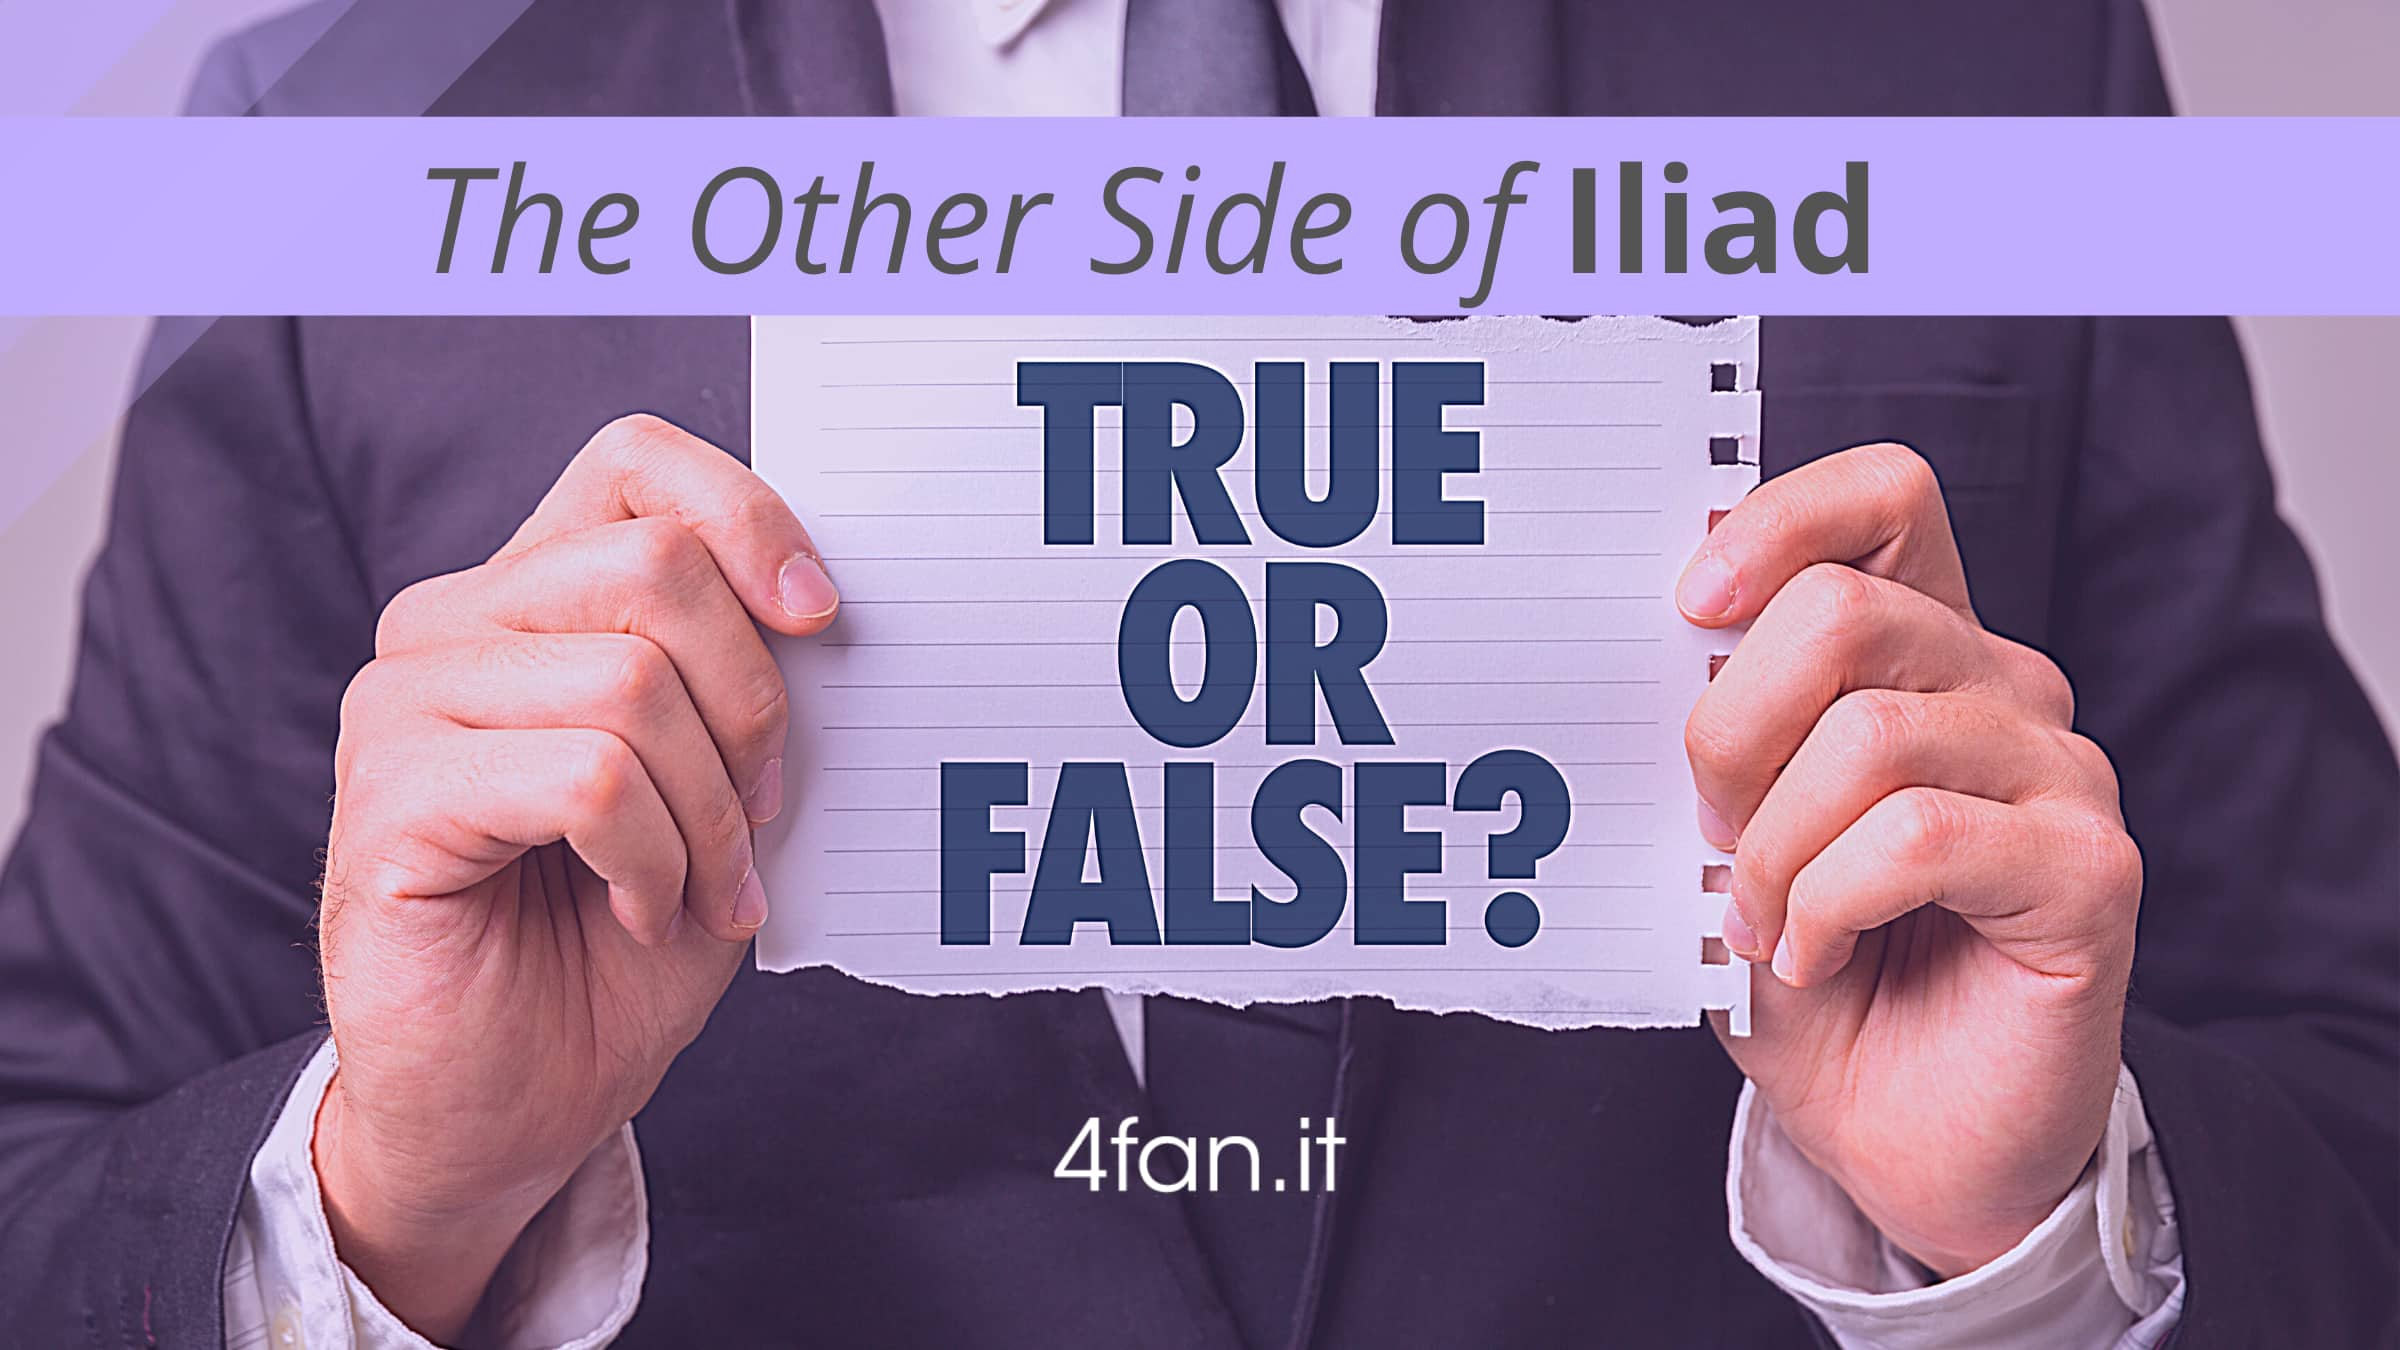 The Other Side of Iliad